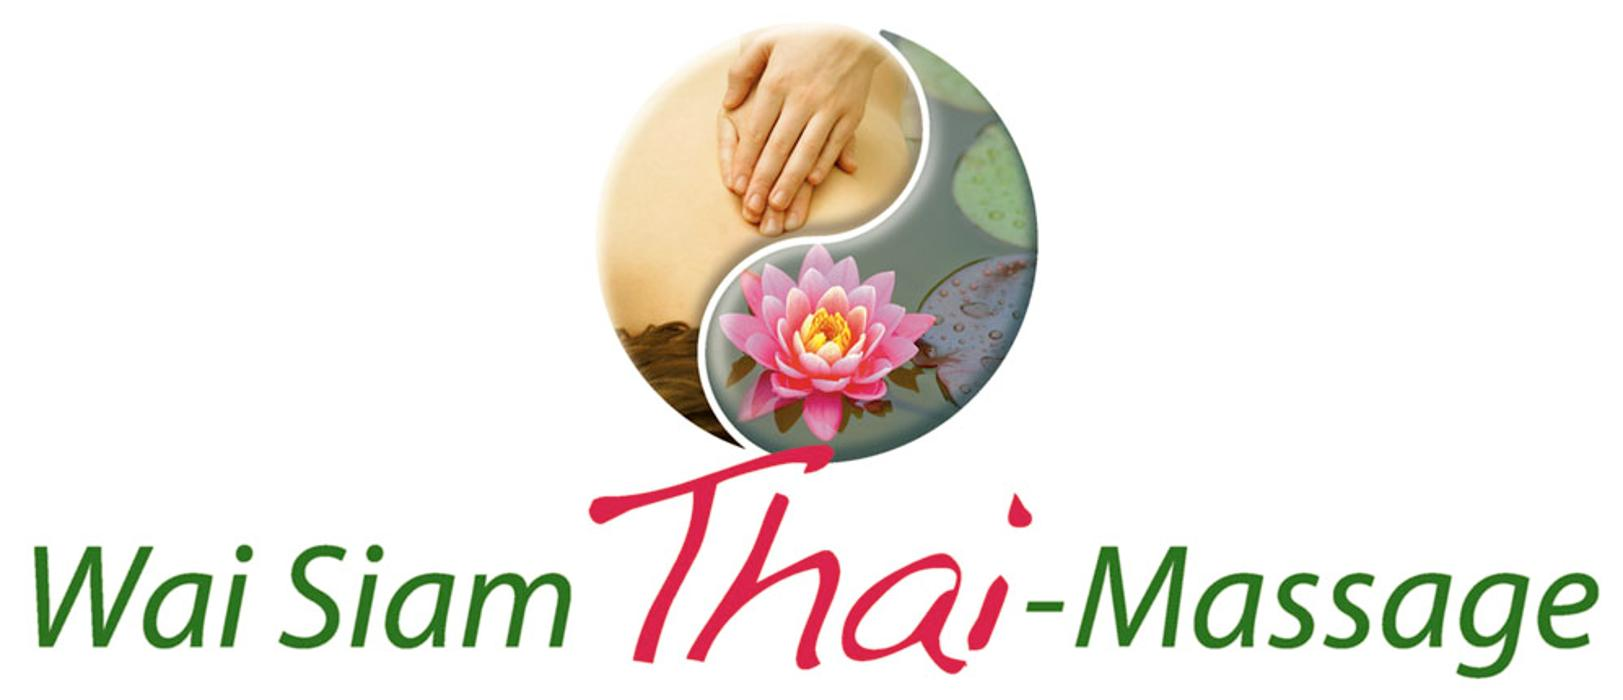 Bild zu Wai Siam Thai-Massage in Dreieich